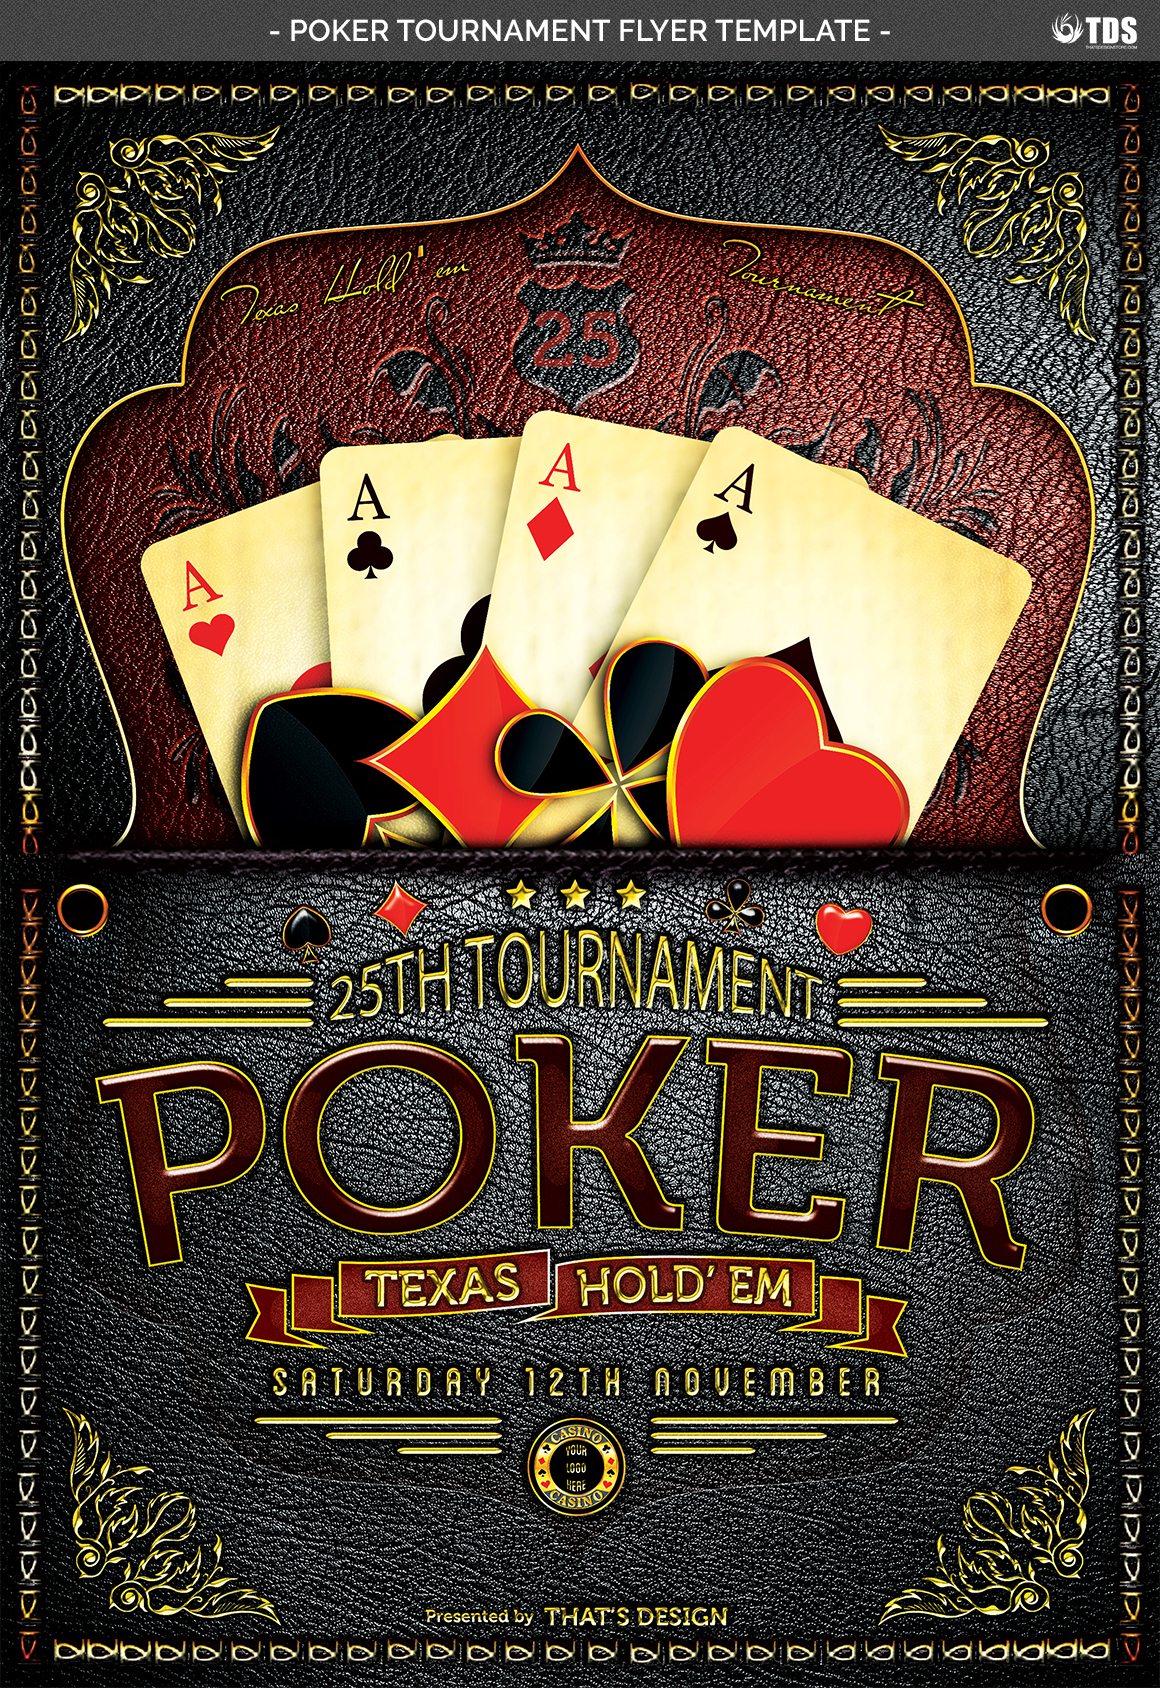 Poker Tournament Flyer Template example image 7